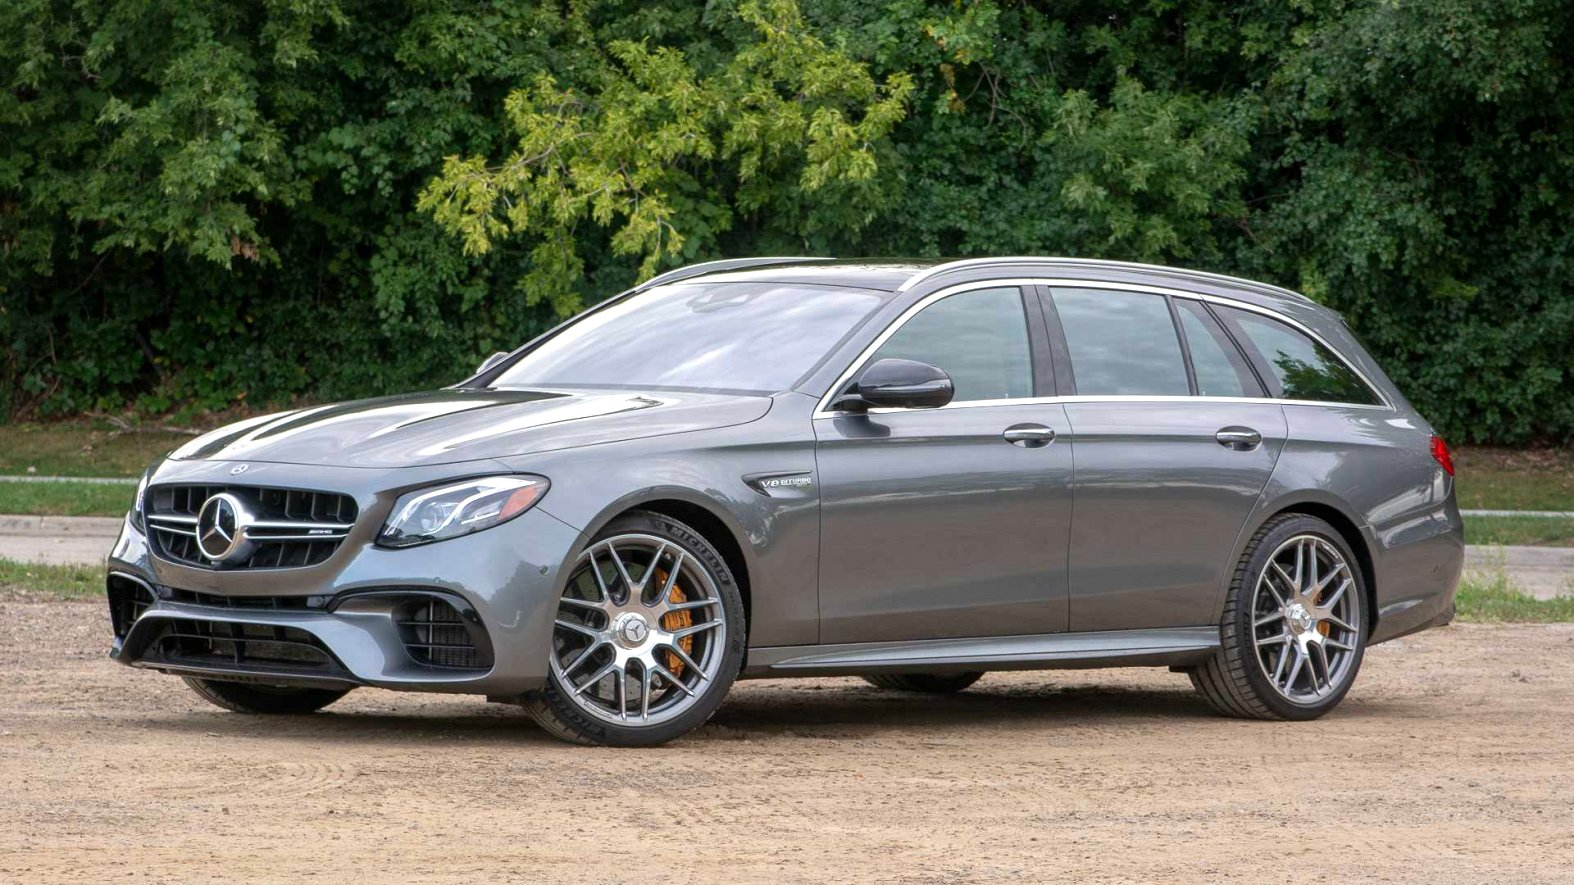 2020 mercedes wagon review First Drive